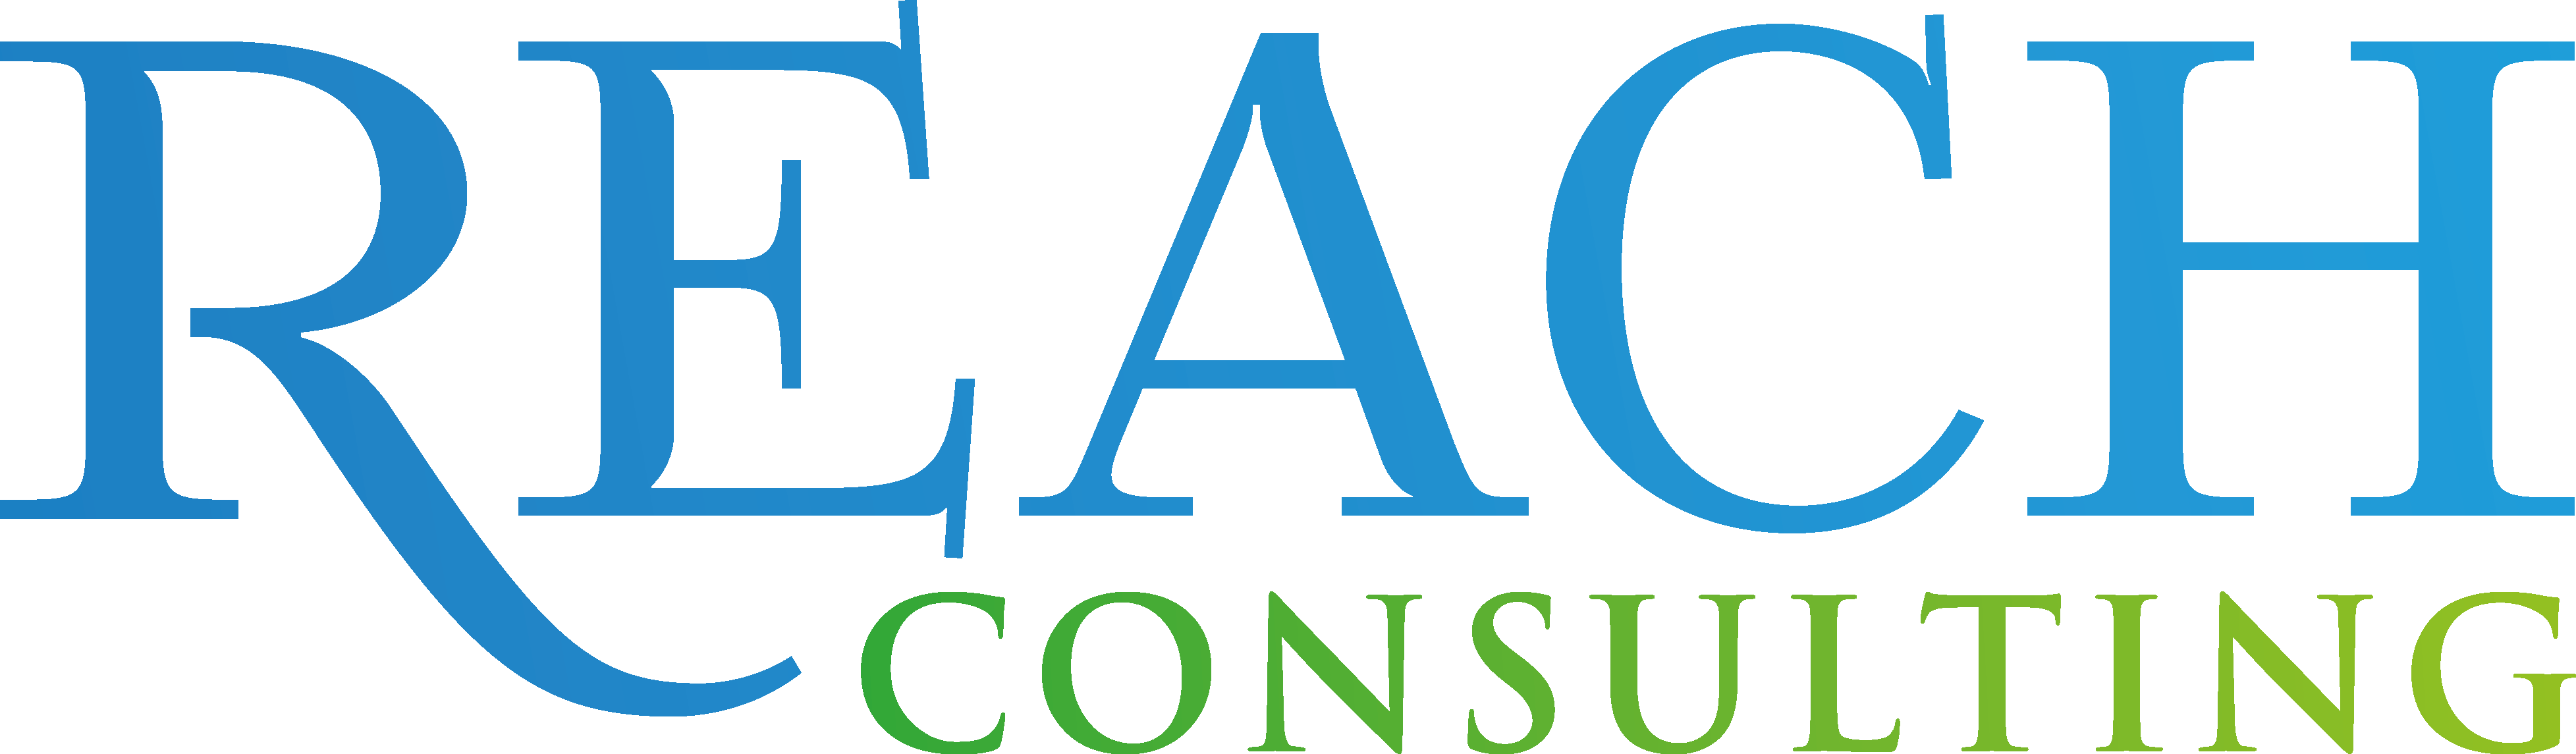 Footer Logo: Reach Consulting